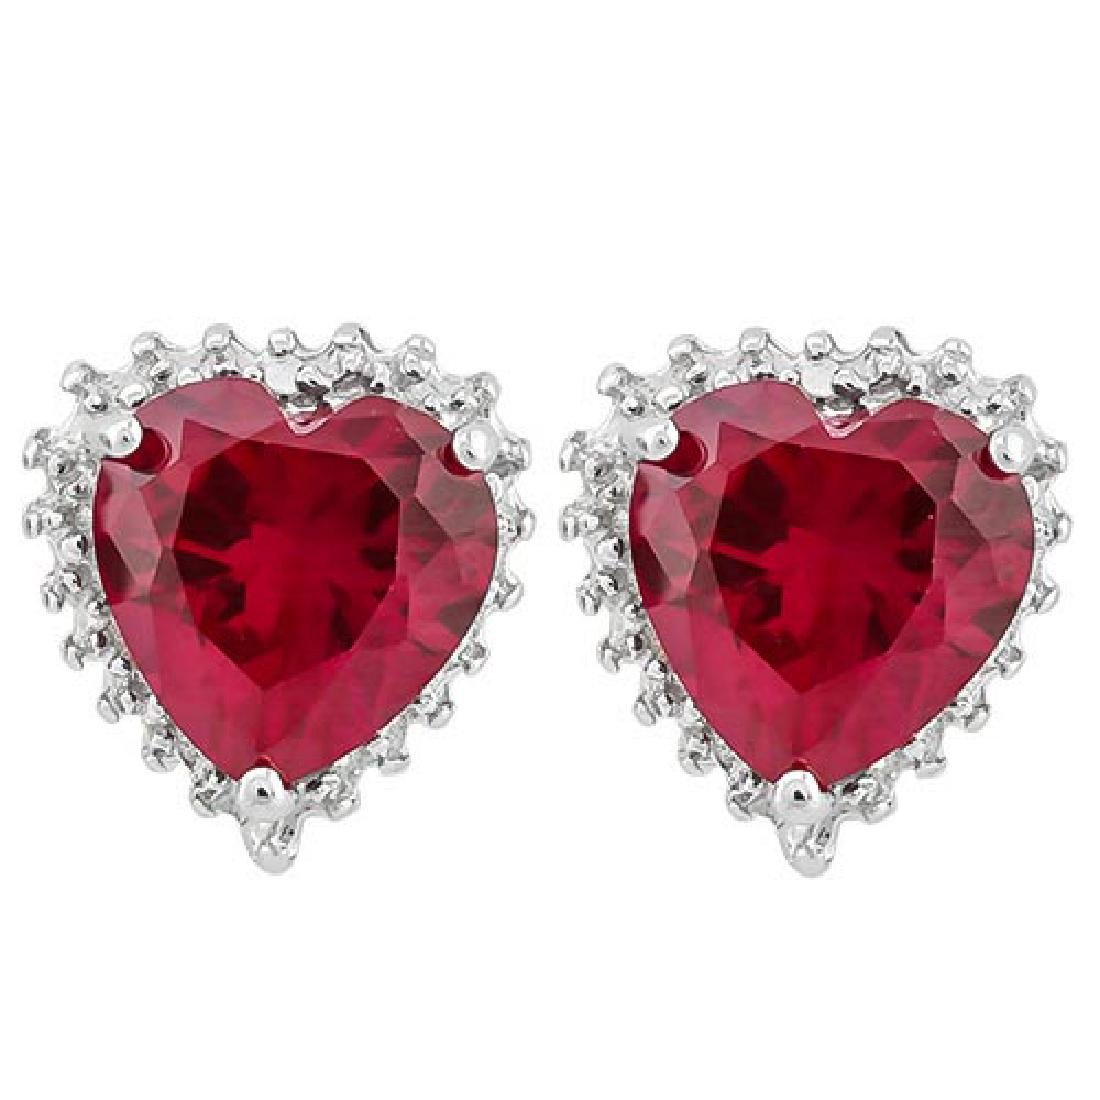 IDEAL 4 1/2 CARAT CREATED RUBY & DIAMOND 925 STERLING S